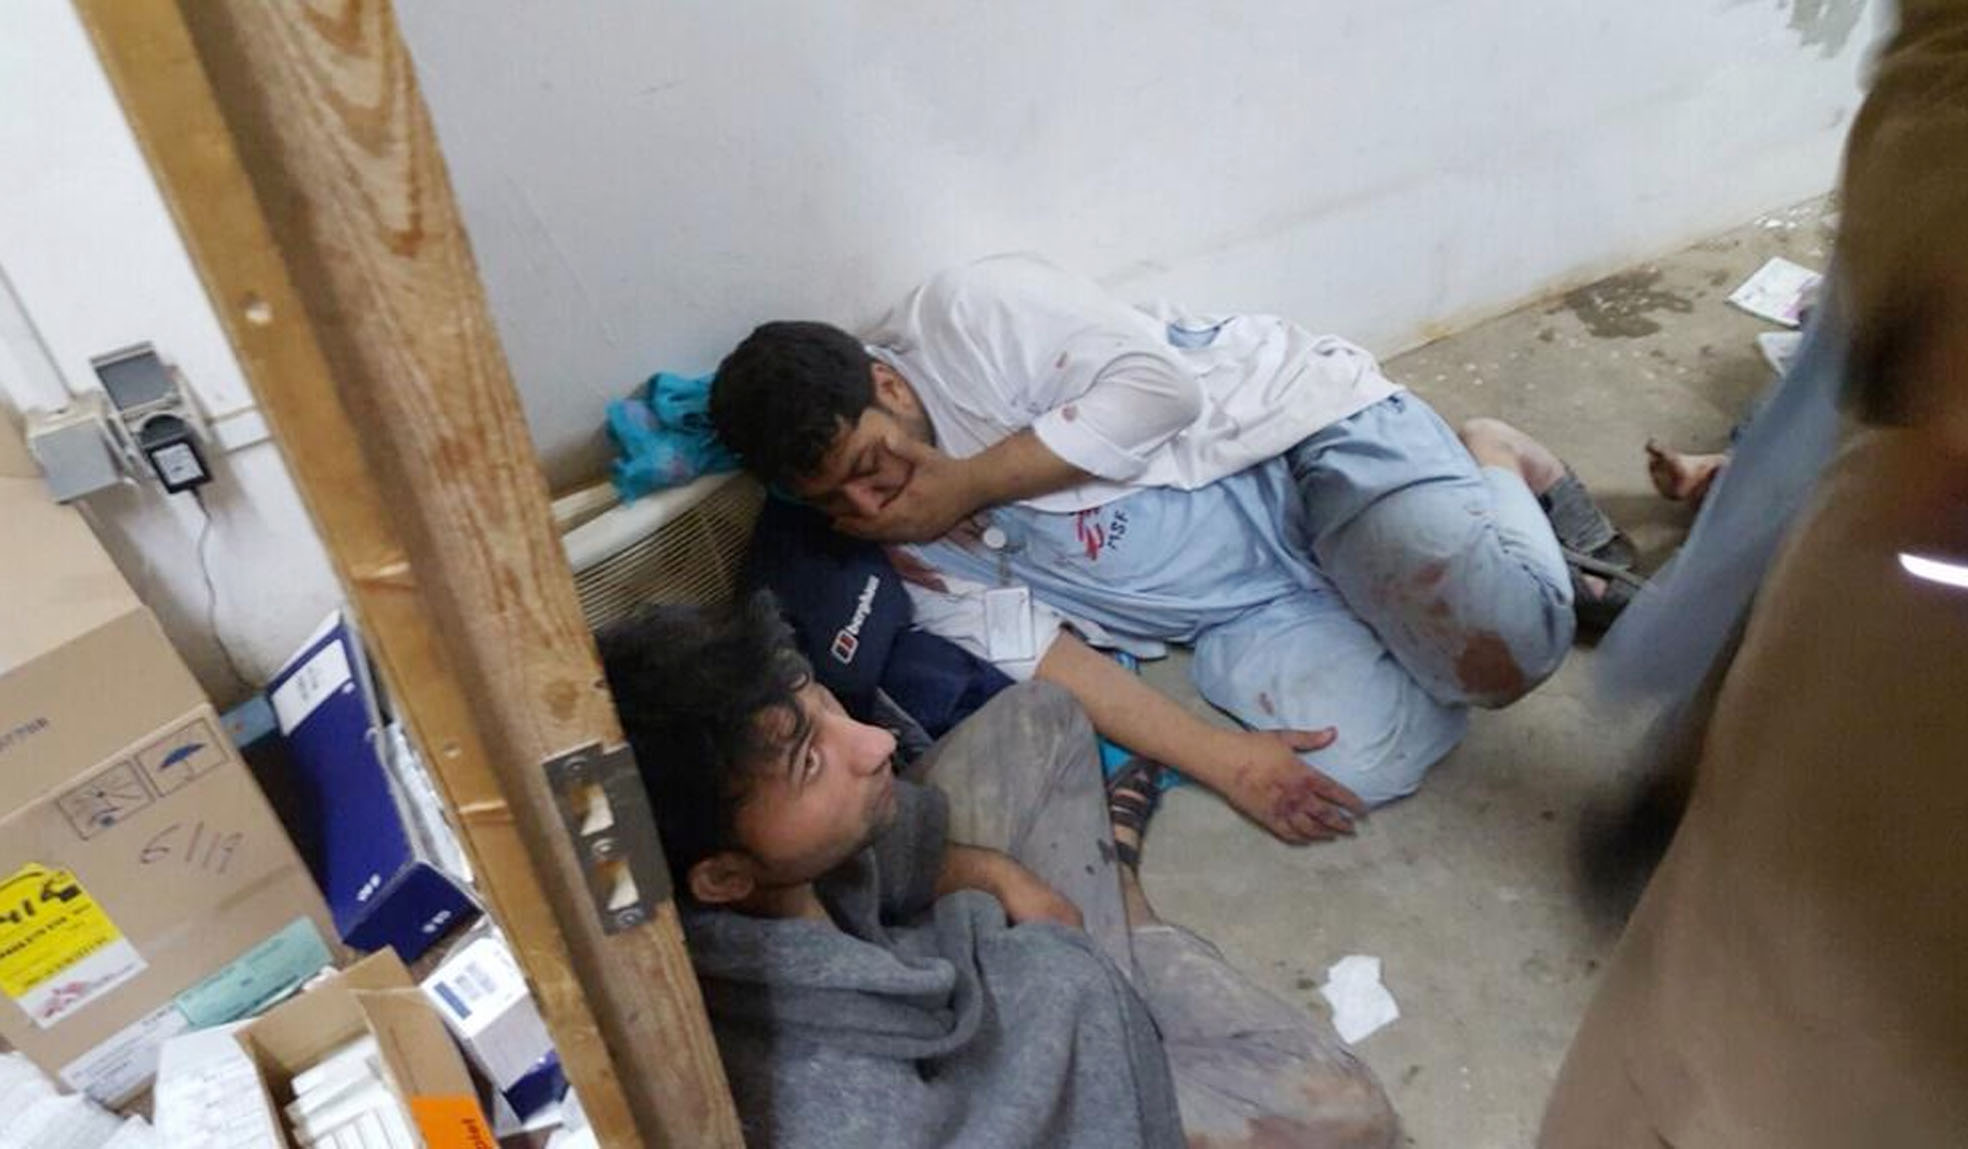 Injured Doctors Without Borders staff are seen after explosions near their hospital in the northern Afghan city of Kunduz, Saturday, Oct. 3, 2015. Doctors Without Borders announced that the death toll from the bombing of the group's Kunduz hospital compound has risen to at least 16, including 3 children and that tens are missing after the explosions that may have been caused by a U.S. airstrike. (Médecins Sans Frontières via AP)